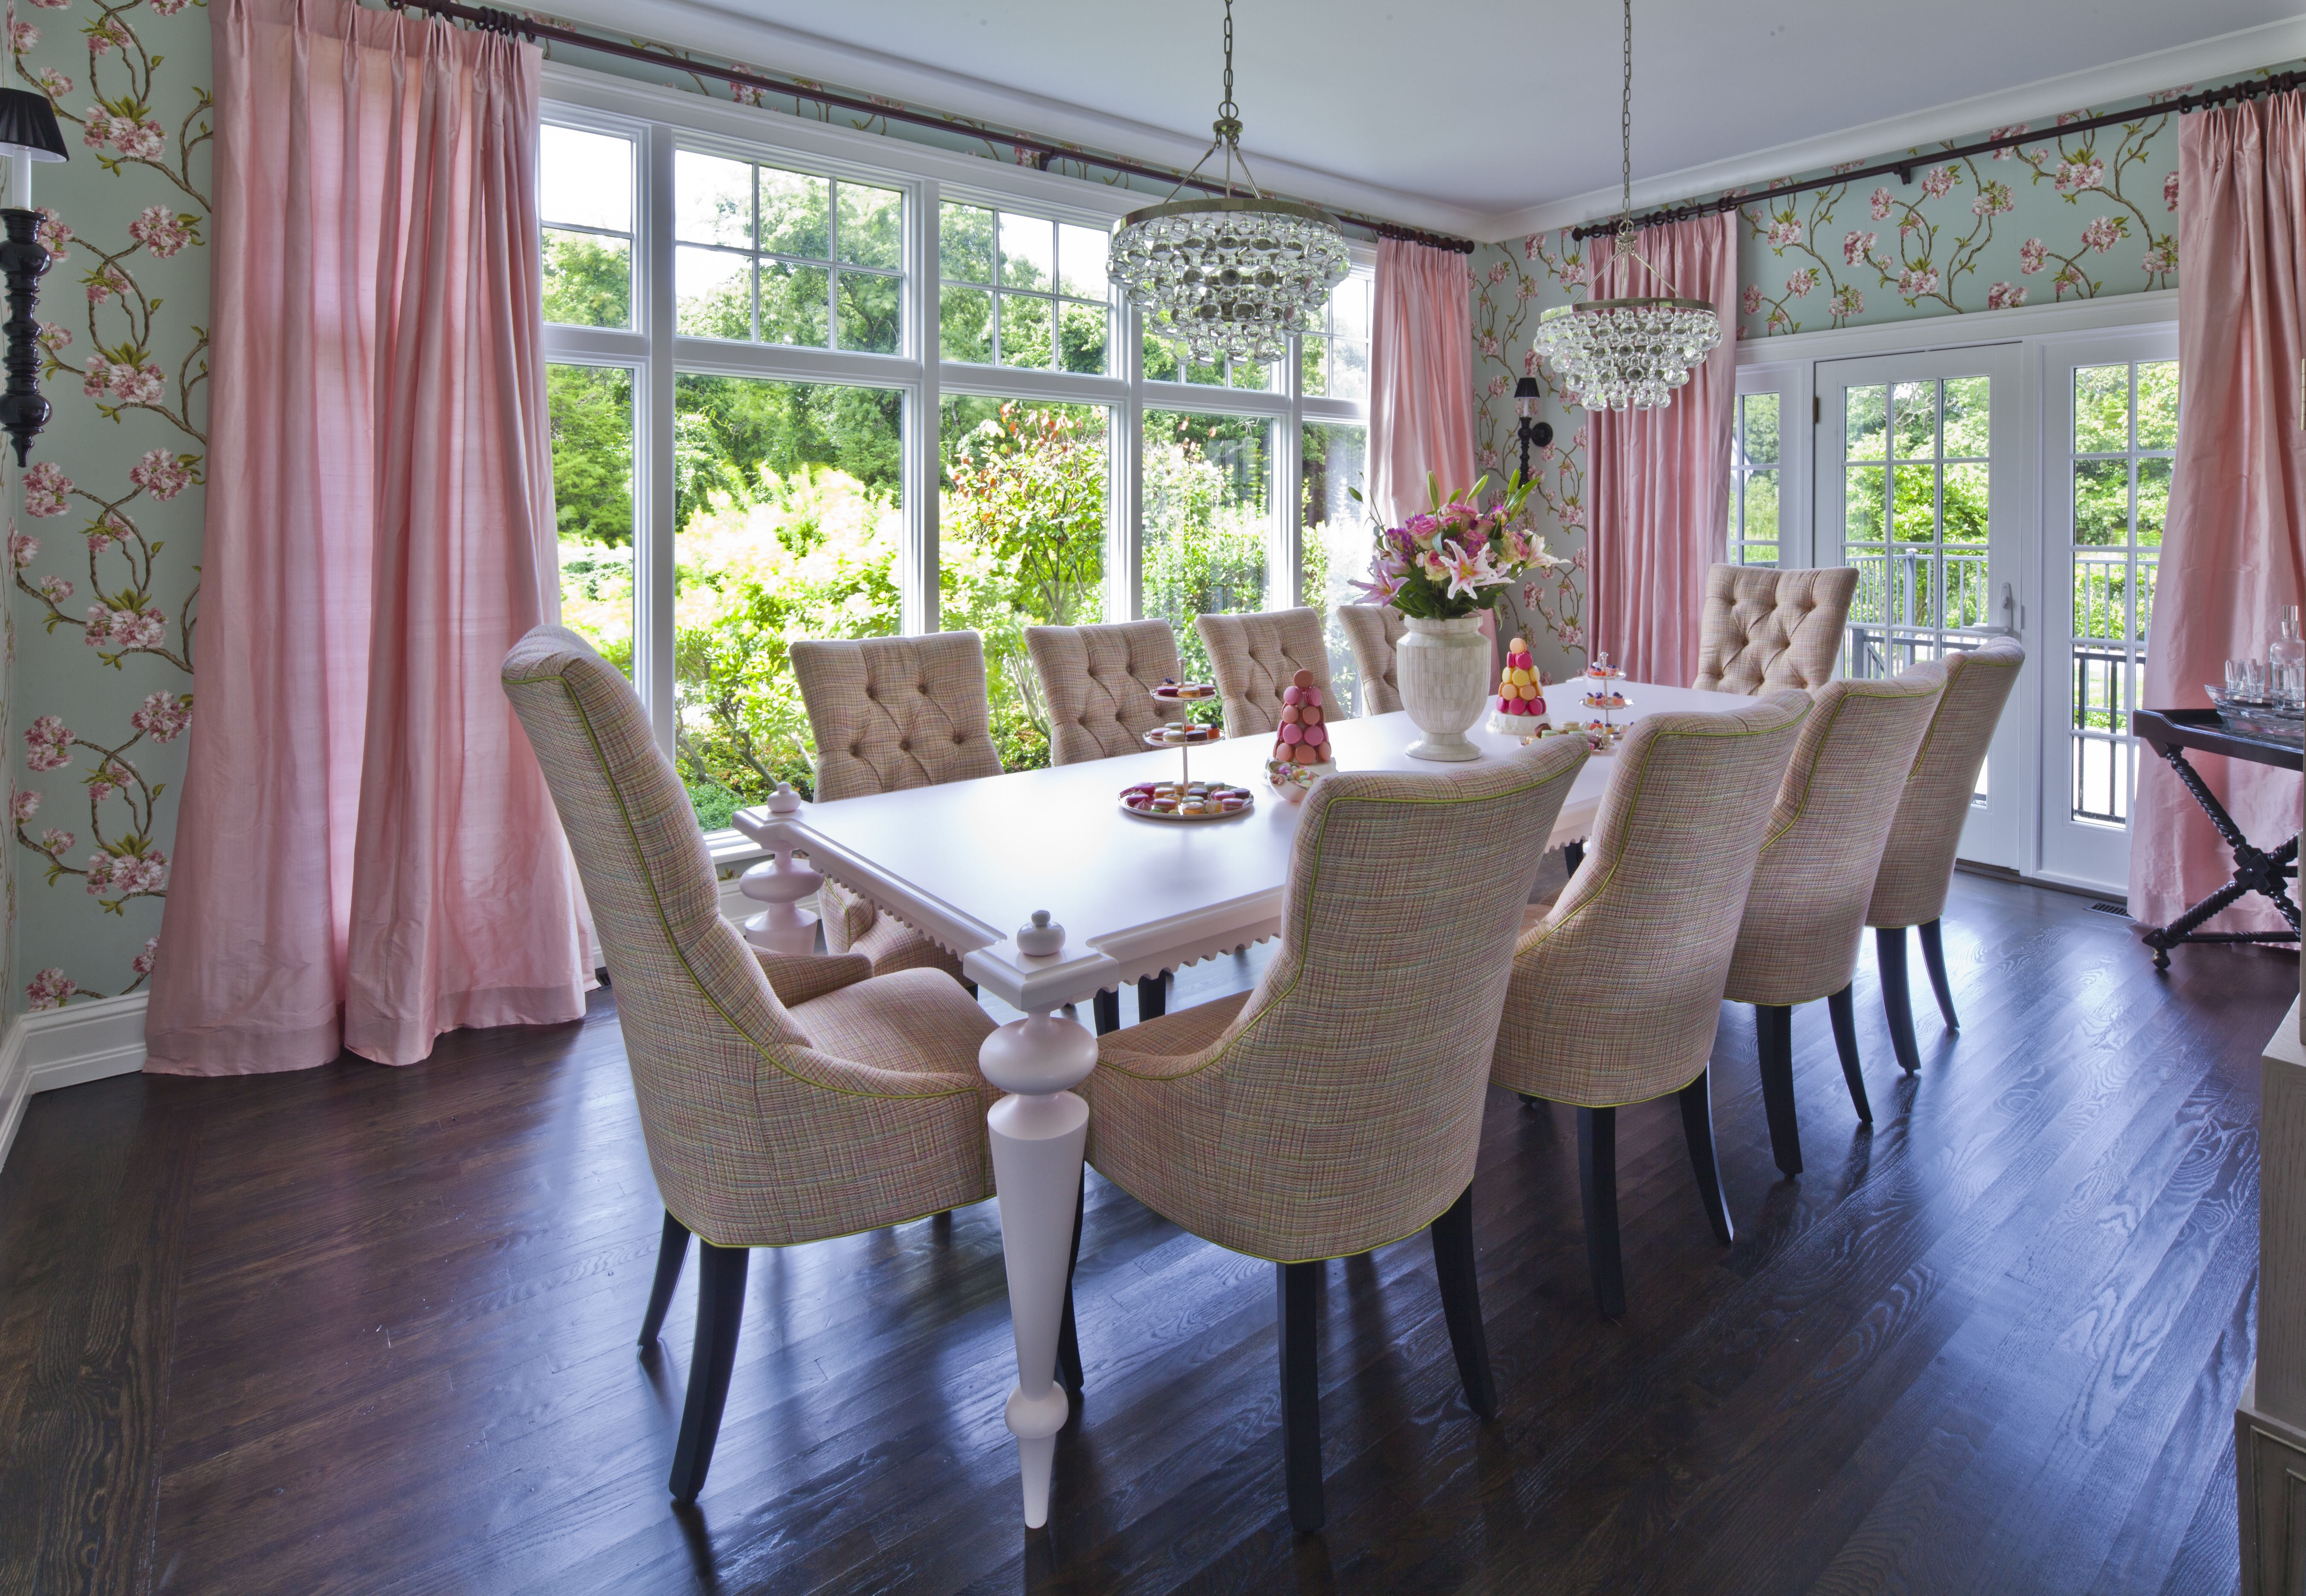 Feminine Dining Room With Soft Pink & Pastel Green (Image 17 of 25)